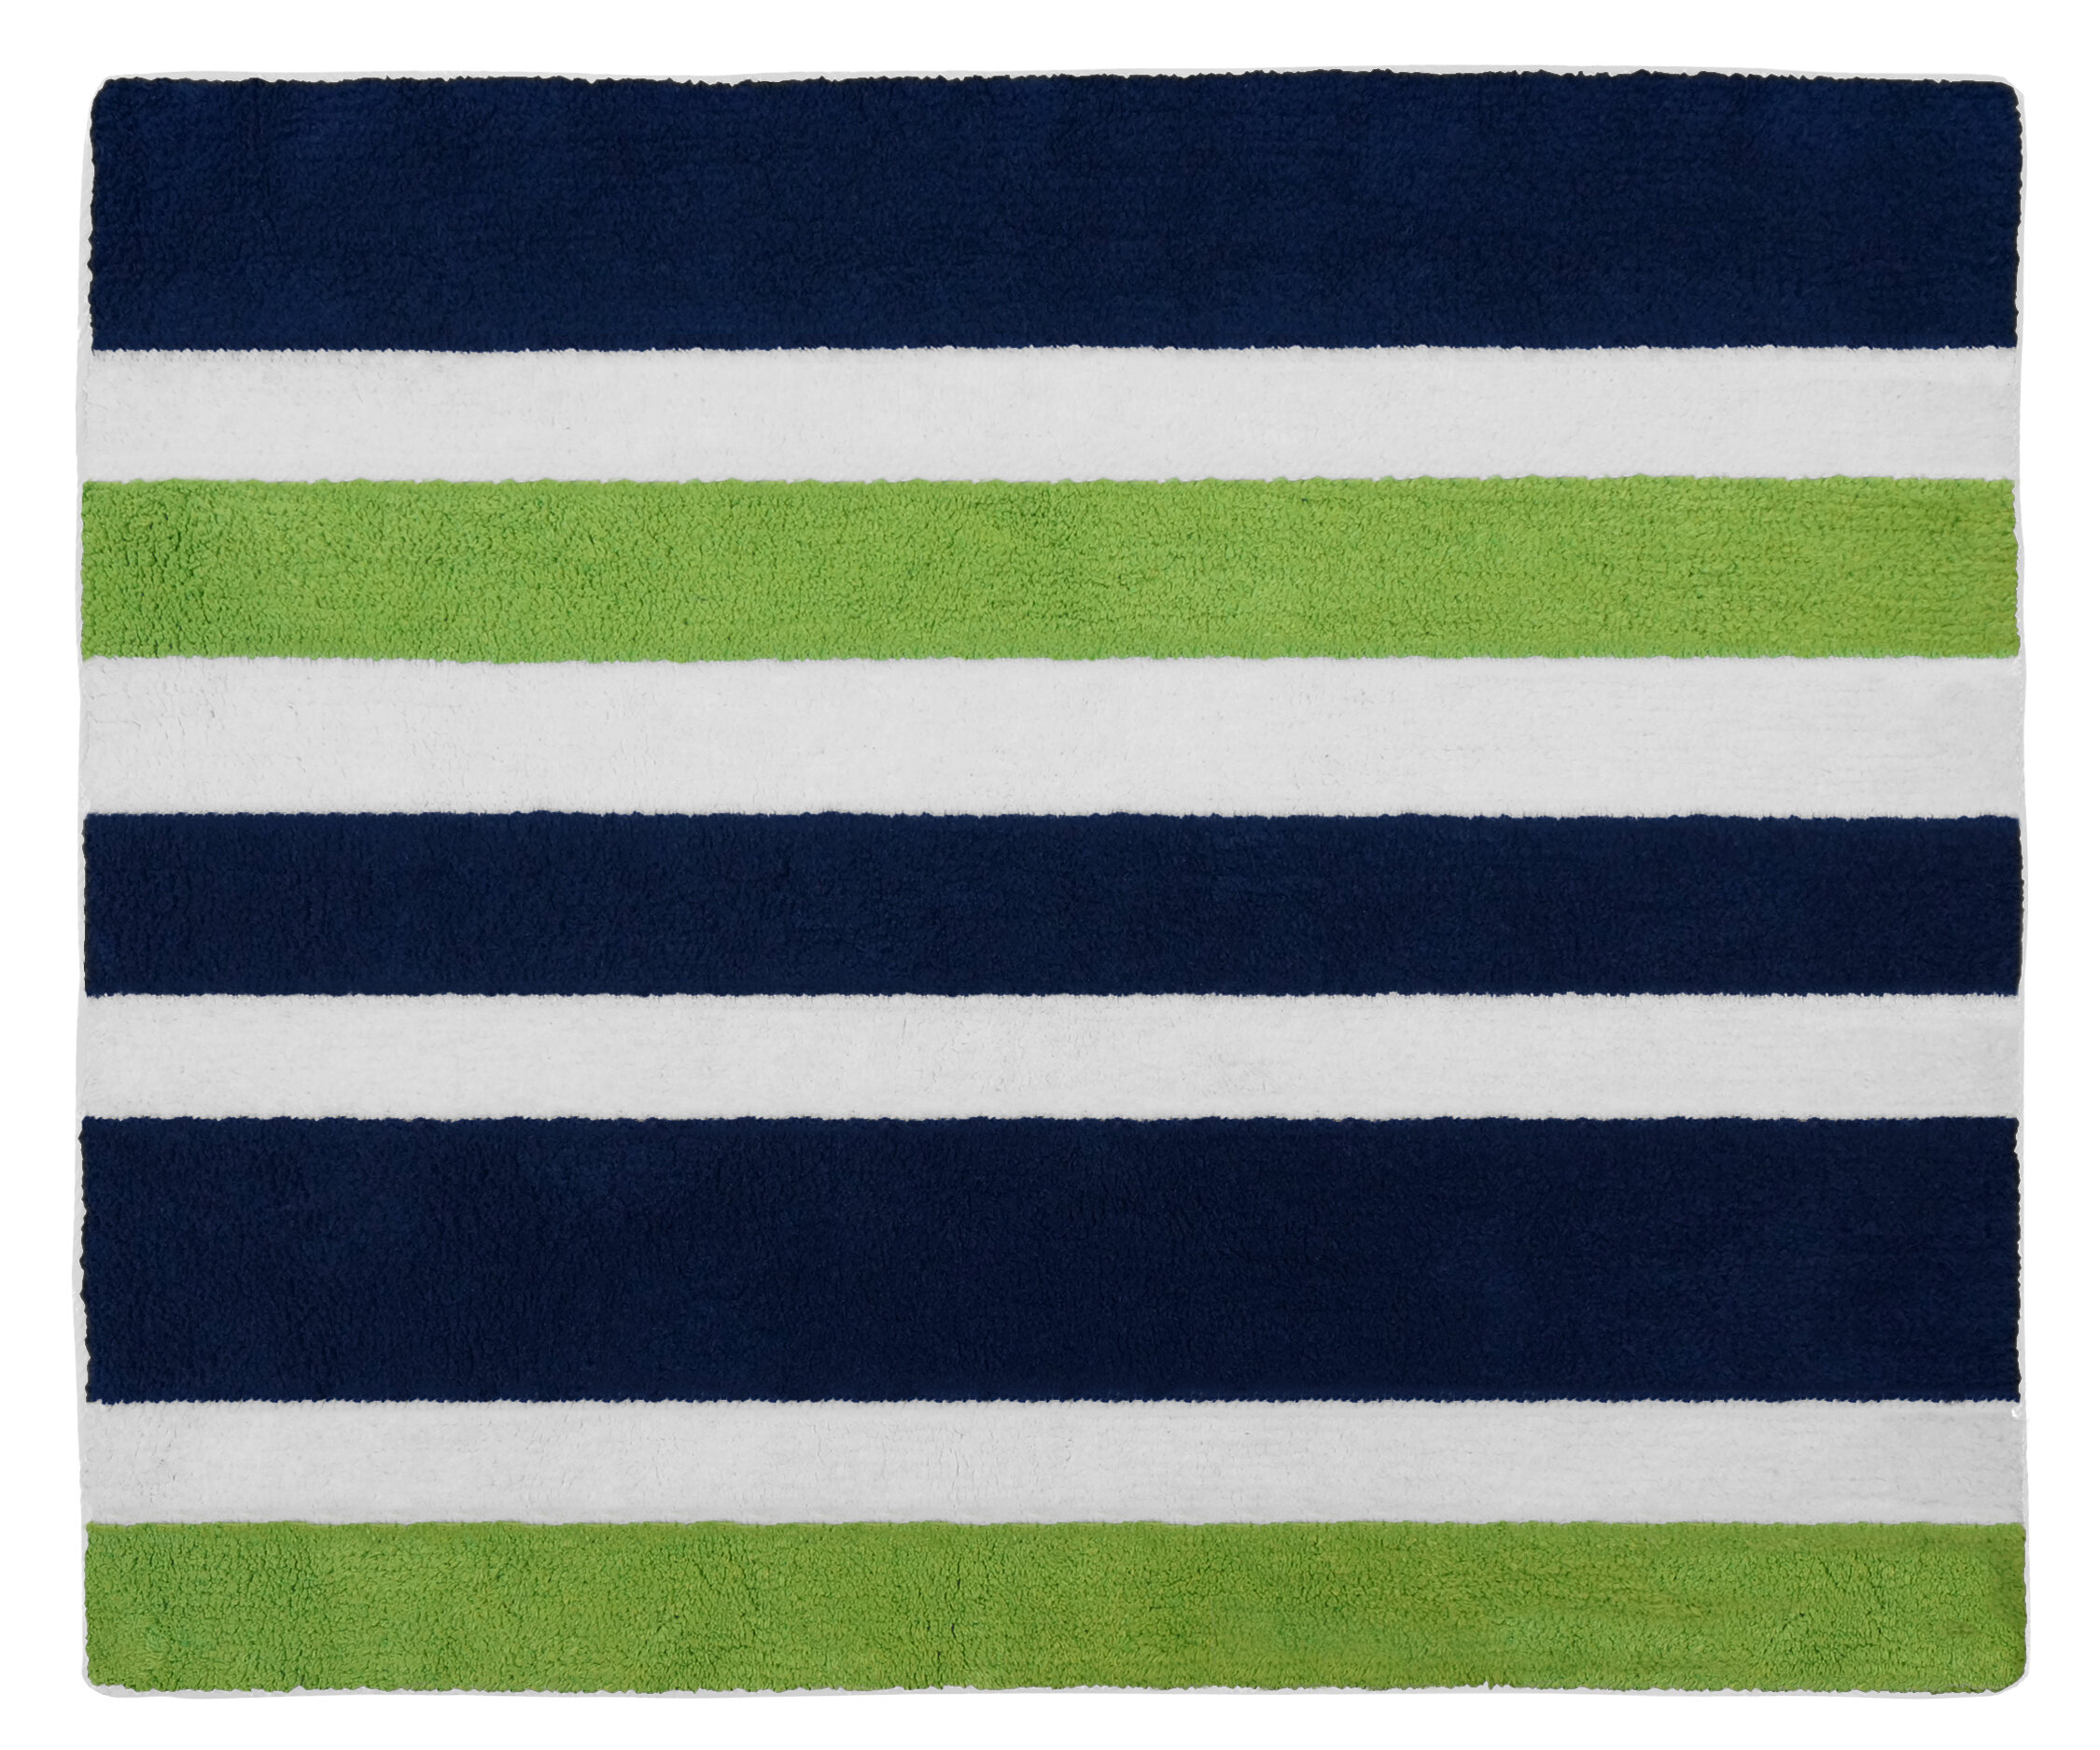 Sweet Jojo Designs Navy Blue And Lime Green Stripe Bath Rug U0026 Reviews |  Wayfair